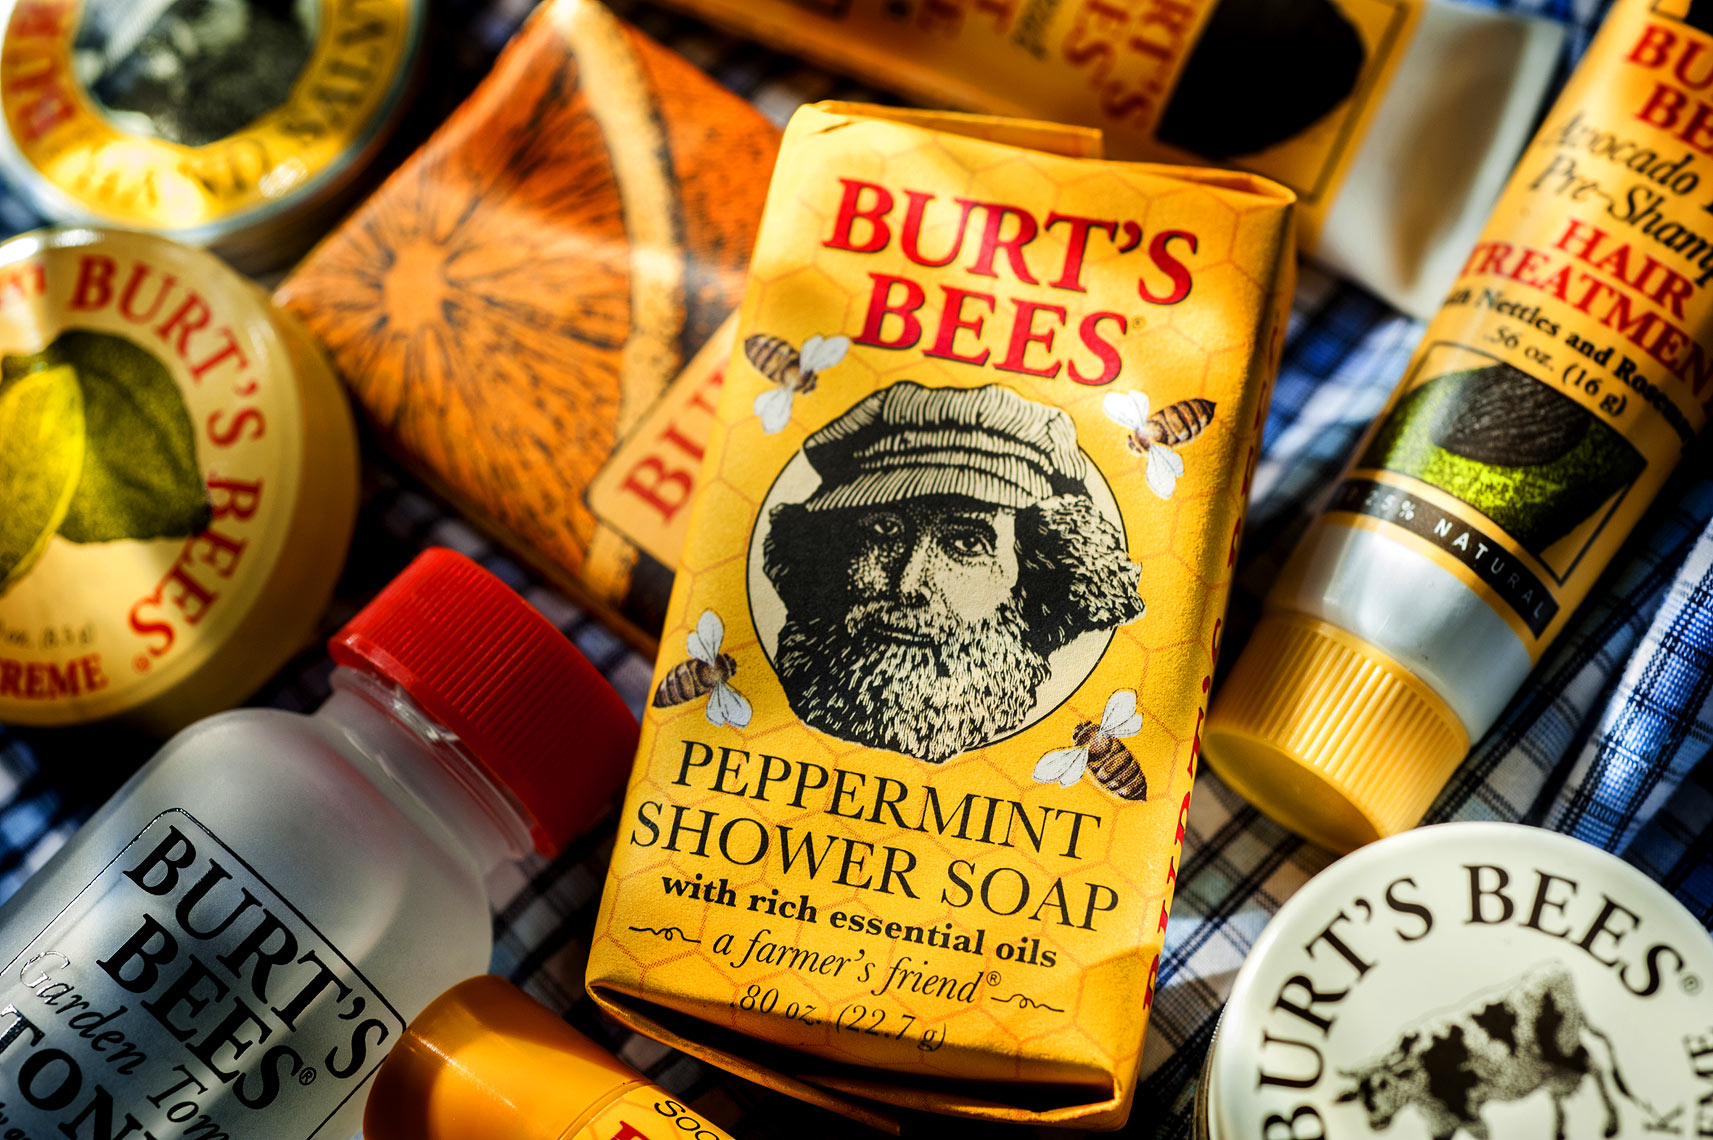 Raleigh product photography Burts Bees